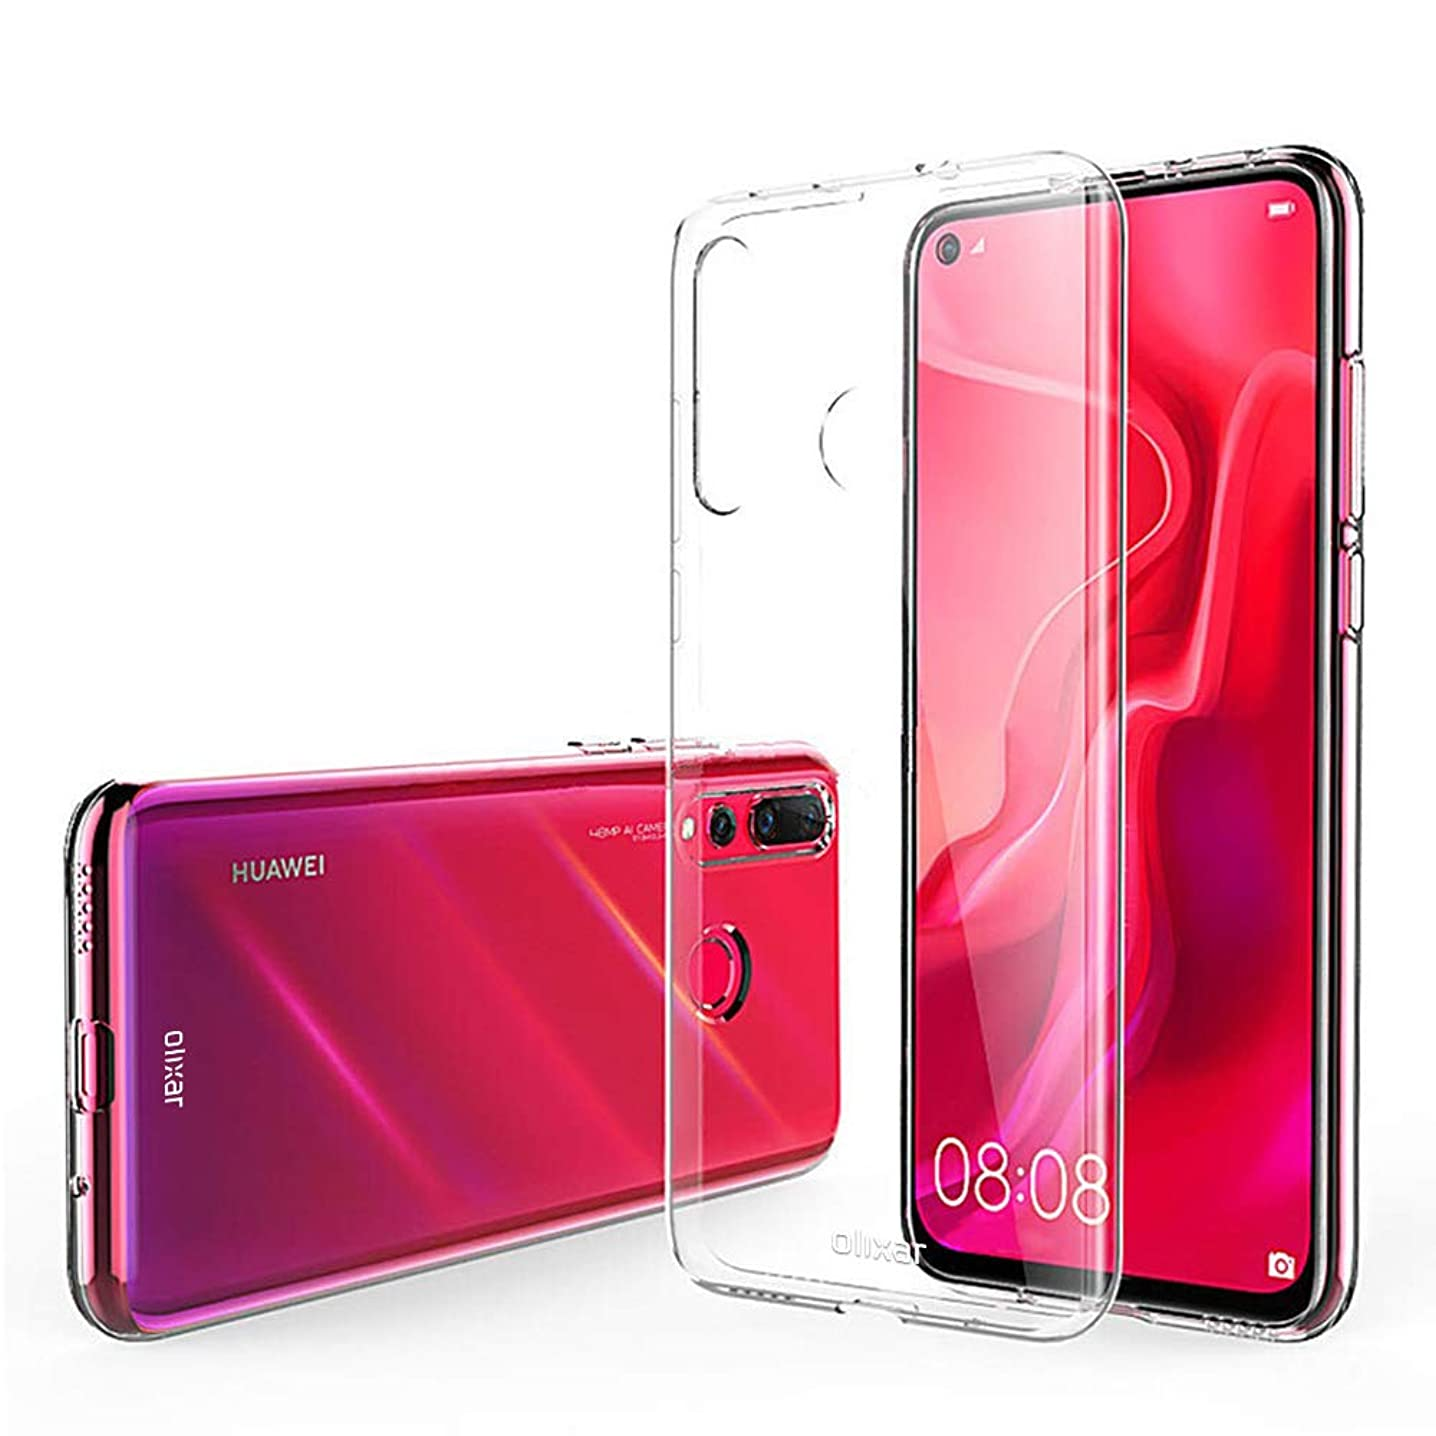 Olixar Clear Case Compatible with Huawei Nova 4 - Transparent Silicone Gel Cover - Ultra Thin - 100% Crystal Clear - Slim Protection, Non Slip - Clear